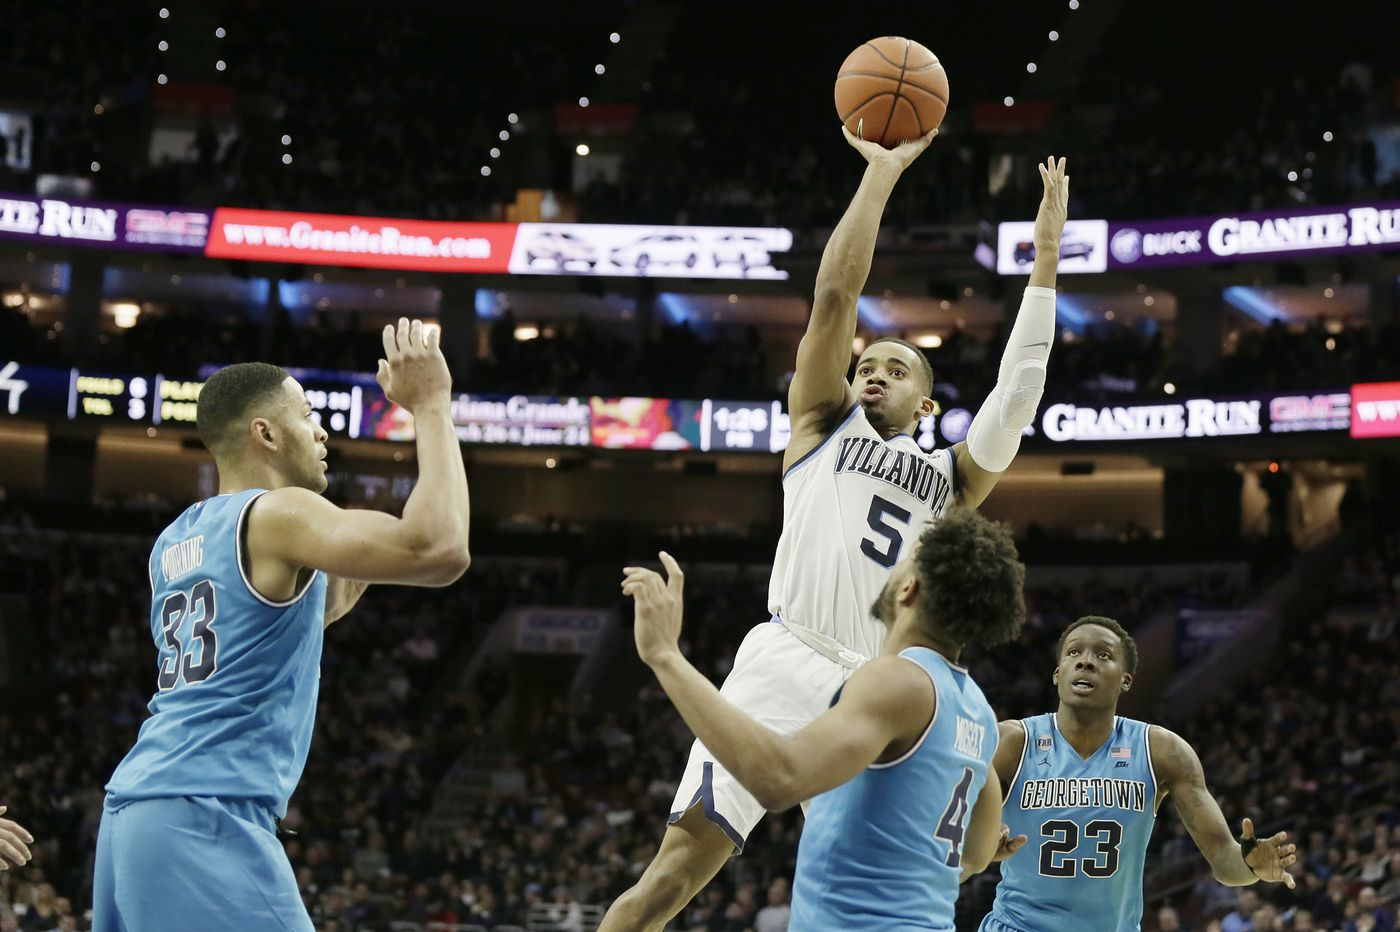 e46021c5b3a Villanova basketball looking to quickly correct transition defense for  Georgetown